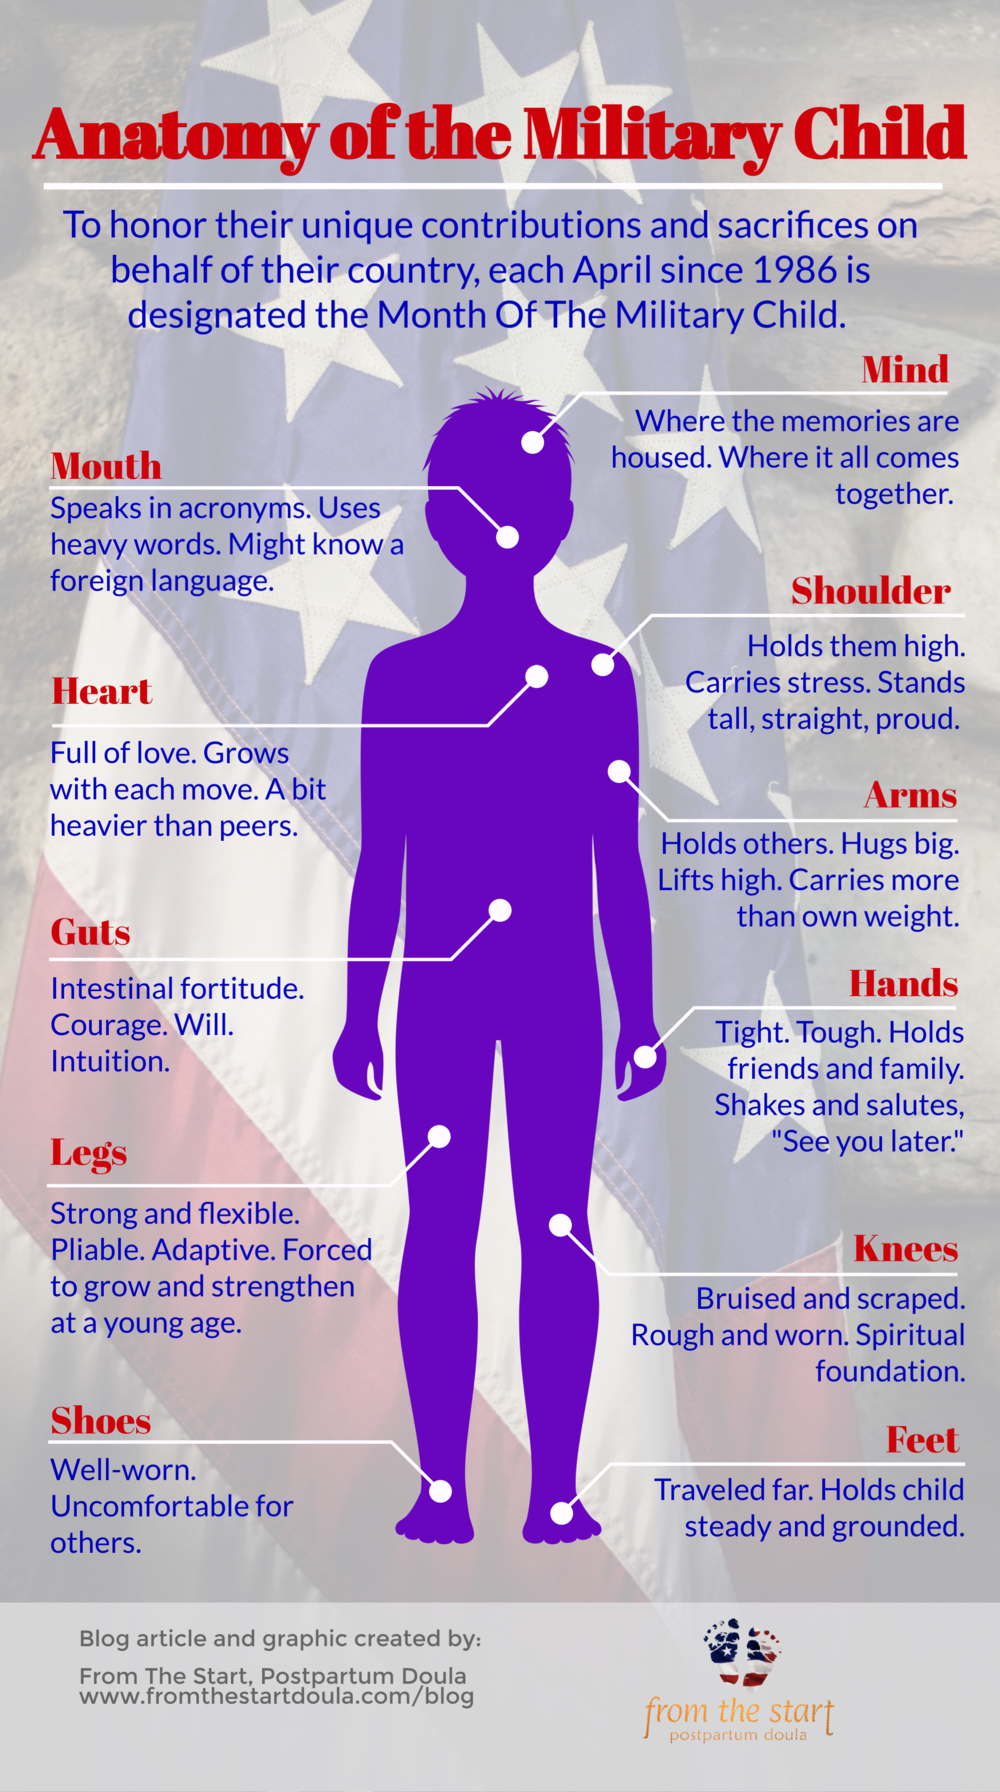 Anatomy-of-Military-Child-.png